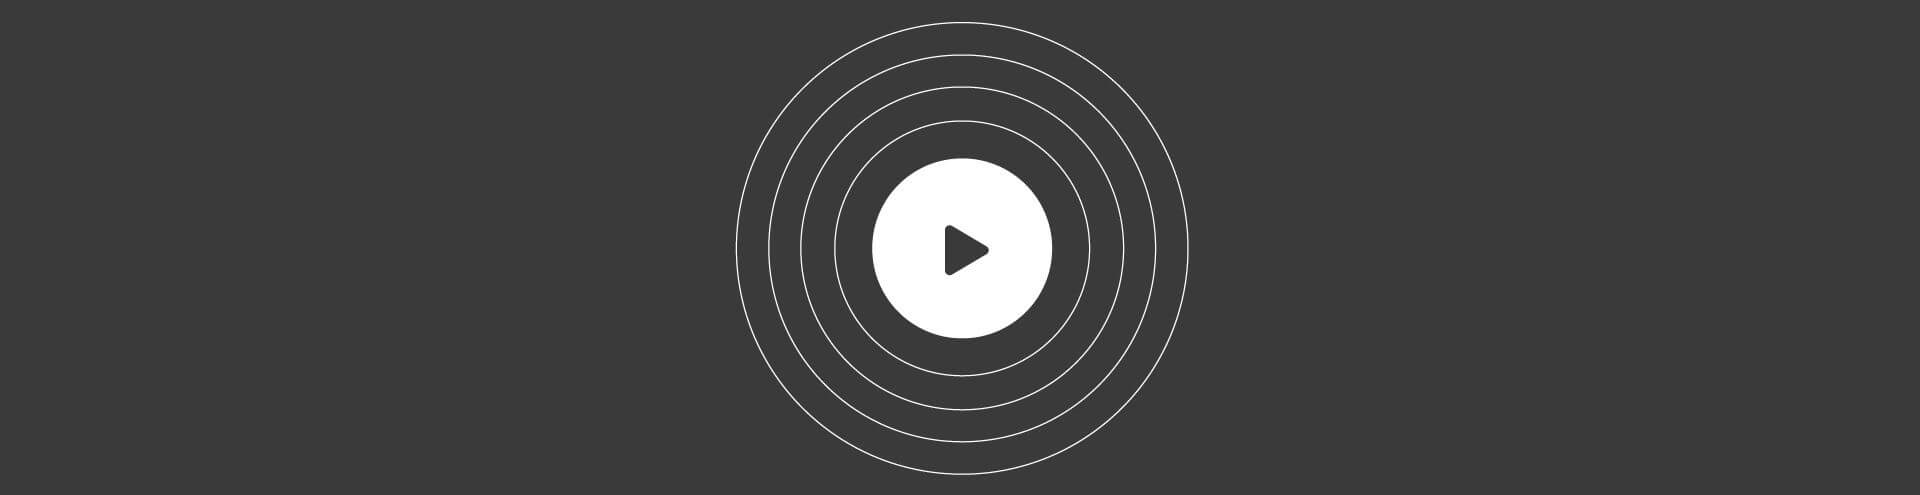 How to Work with Sound In JS: Сustom Audio Player With Web